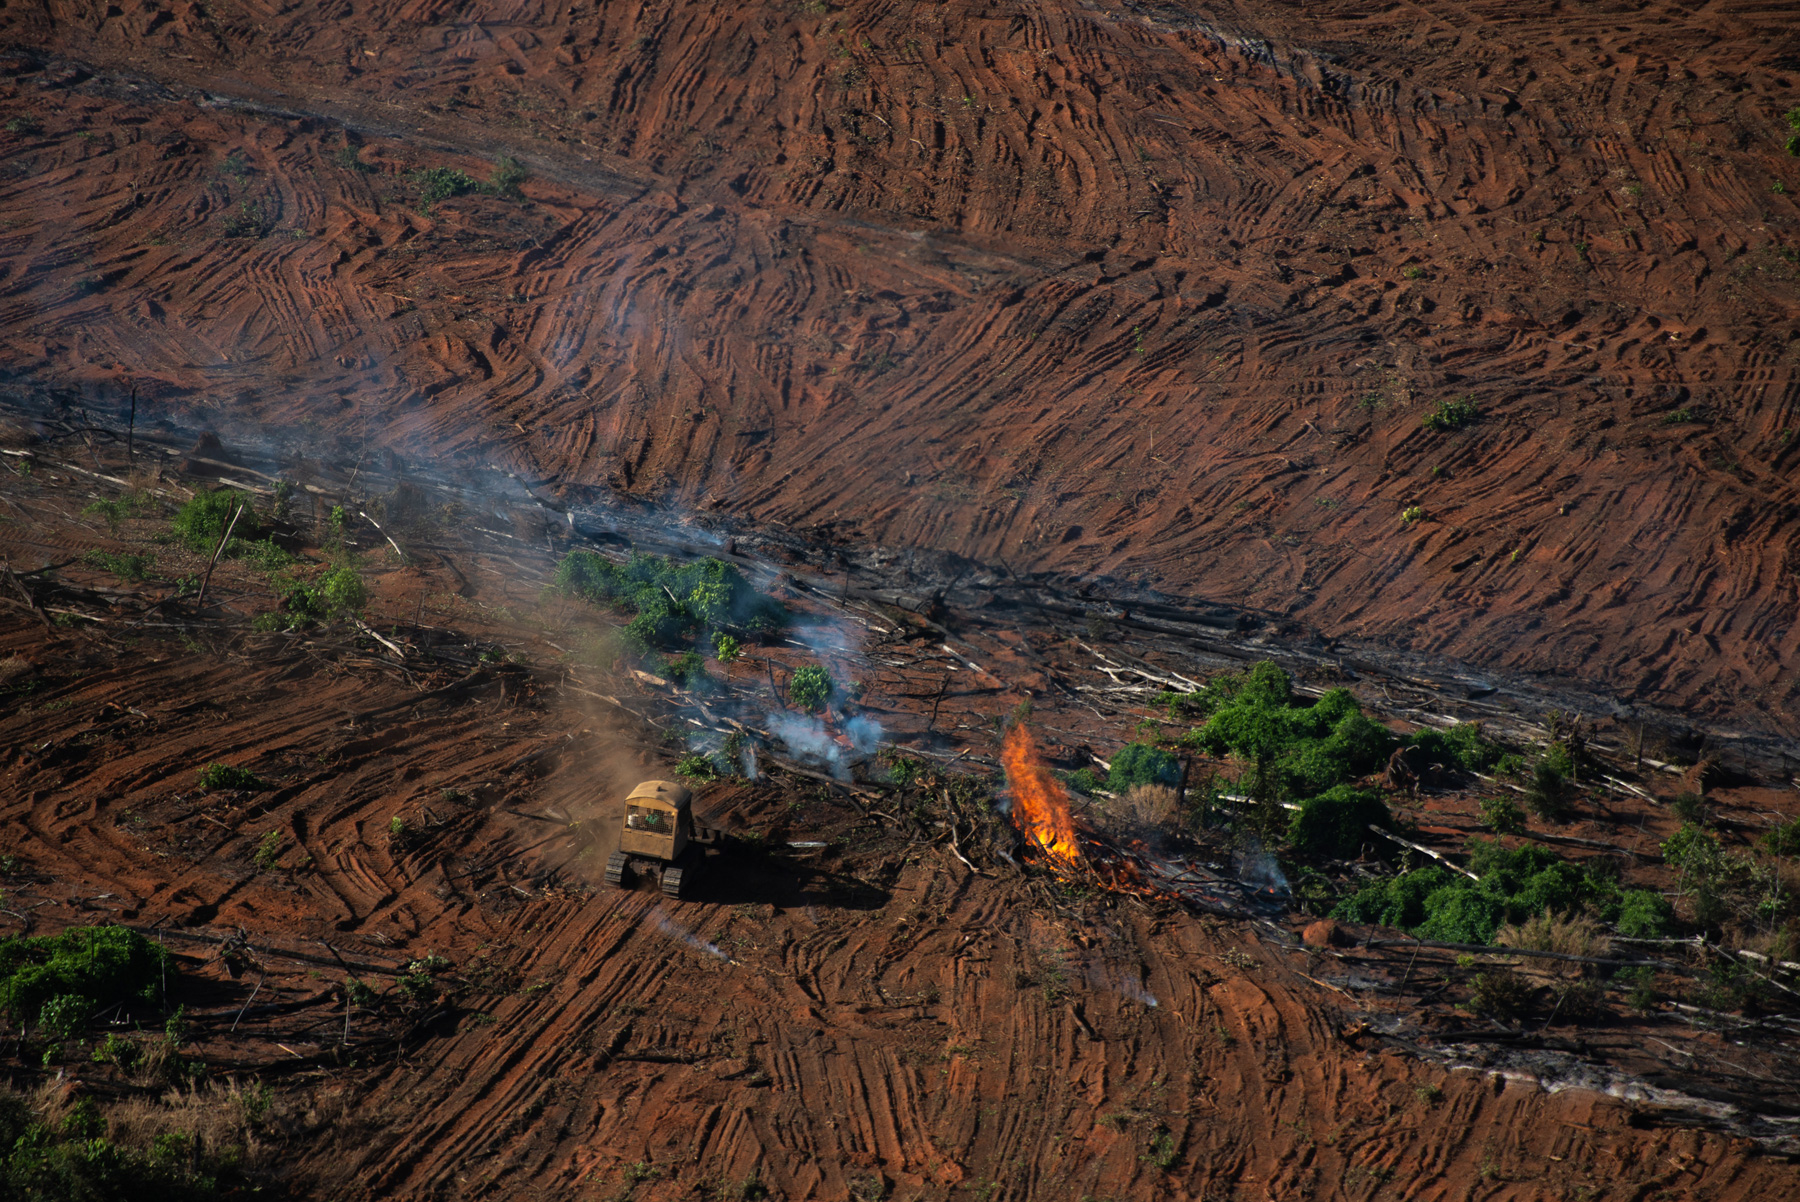 Forest remainders burning in an area registered by the last Prodes (Brazilian Amazon Satellite Monitoring Project), in Juara, Mato Grosso state. © Christian Braga / Greenpeace